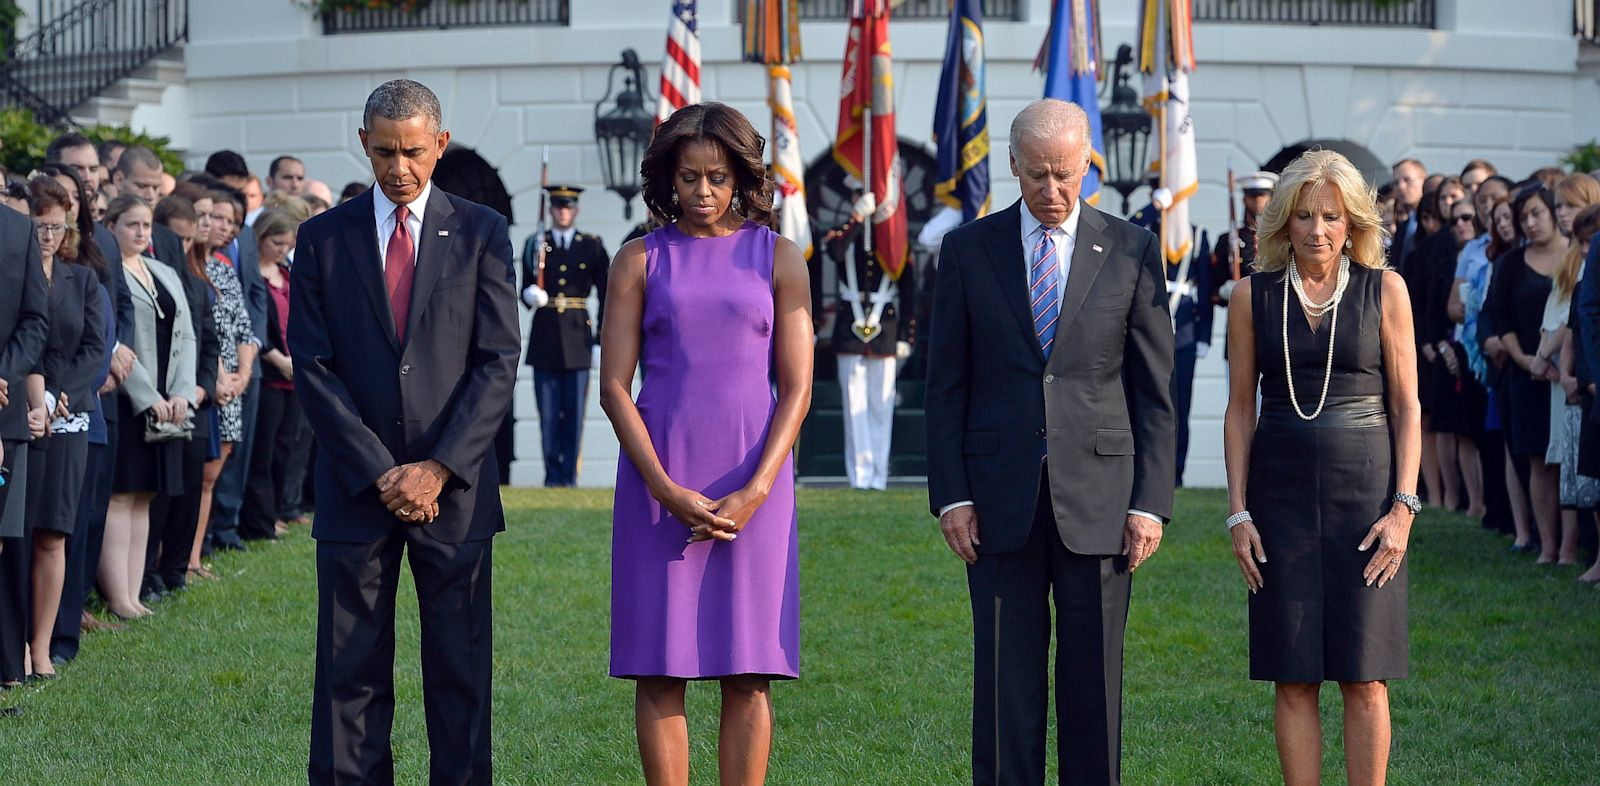 PHOTO: President Barack Obama, First Lady Michelle Obama, Vice President Joe Biden and Jill Biden observe a moment of silence to mark the 12th anniversary of the 9/11 attacks on the South Lawn of the White House in Washington, DC, Sept. 11, 2013.